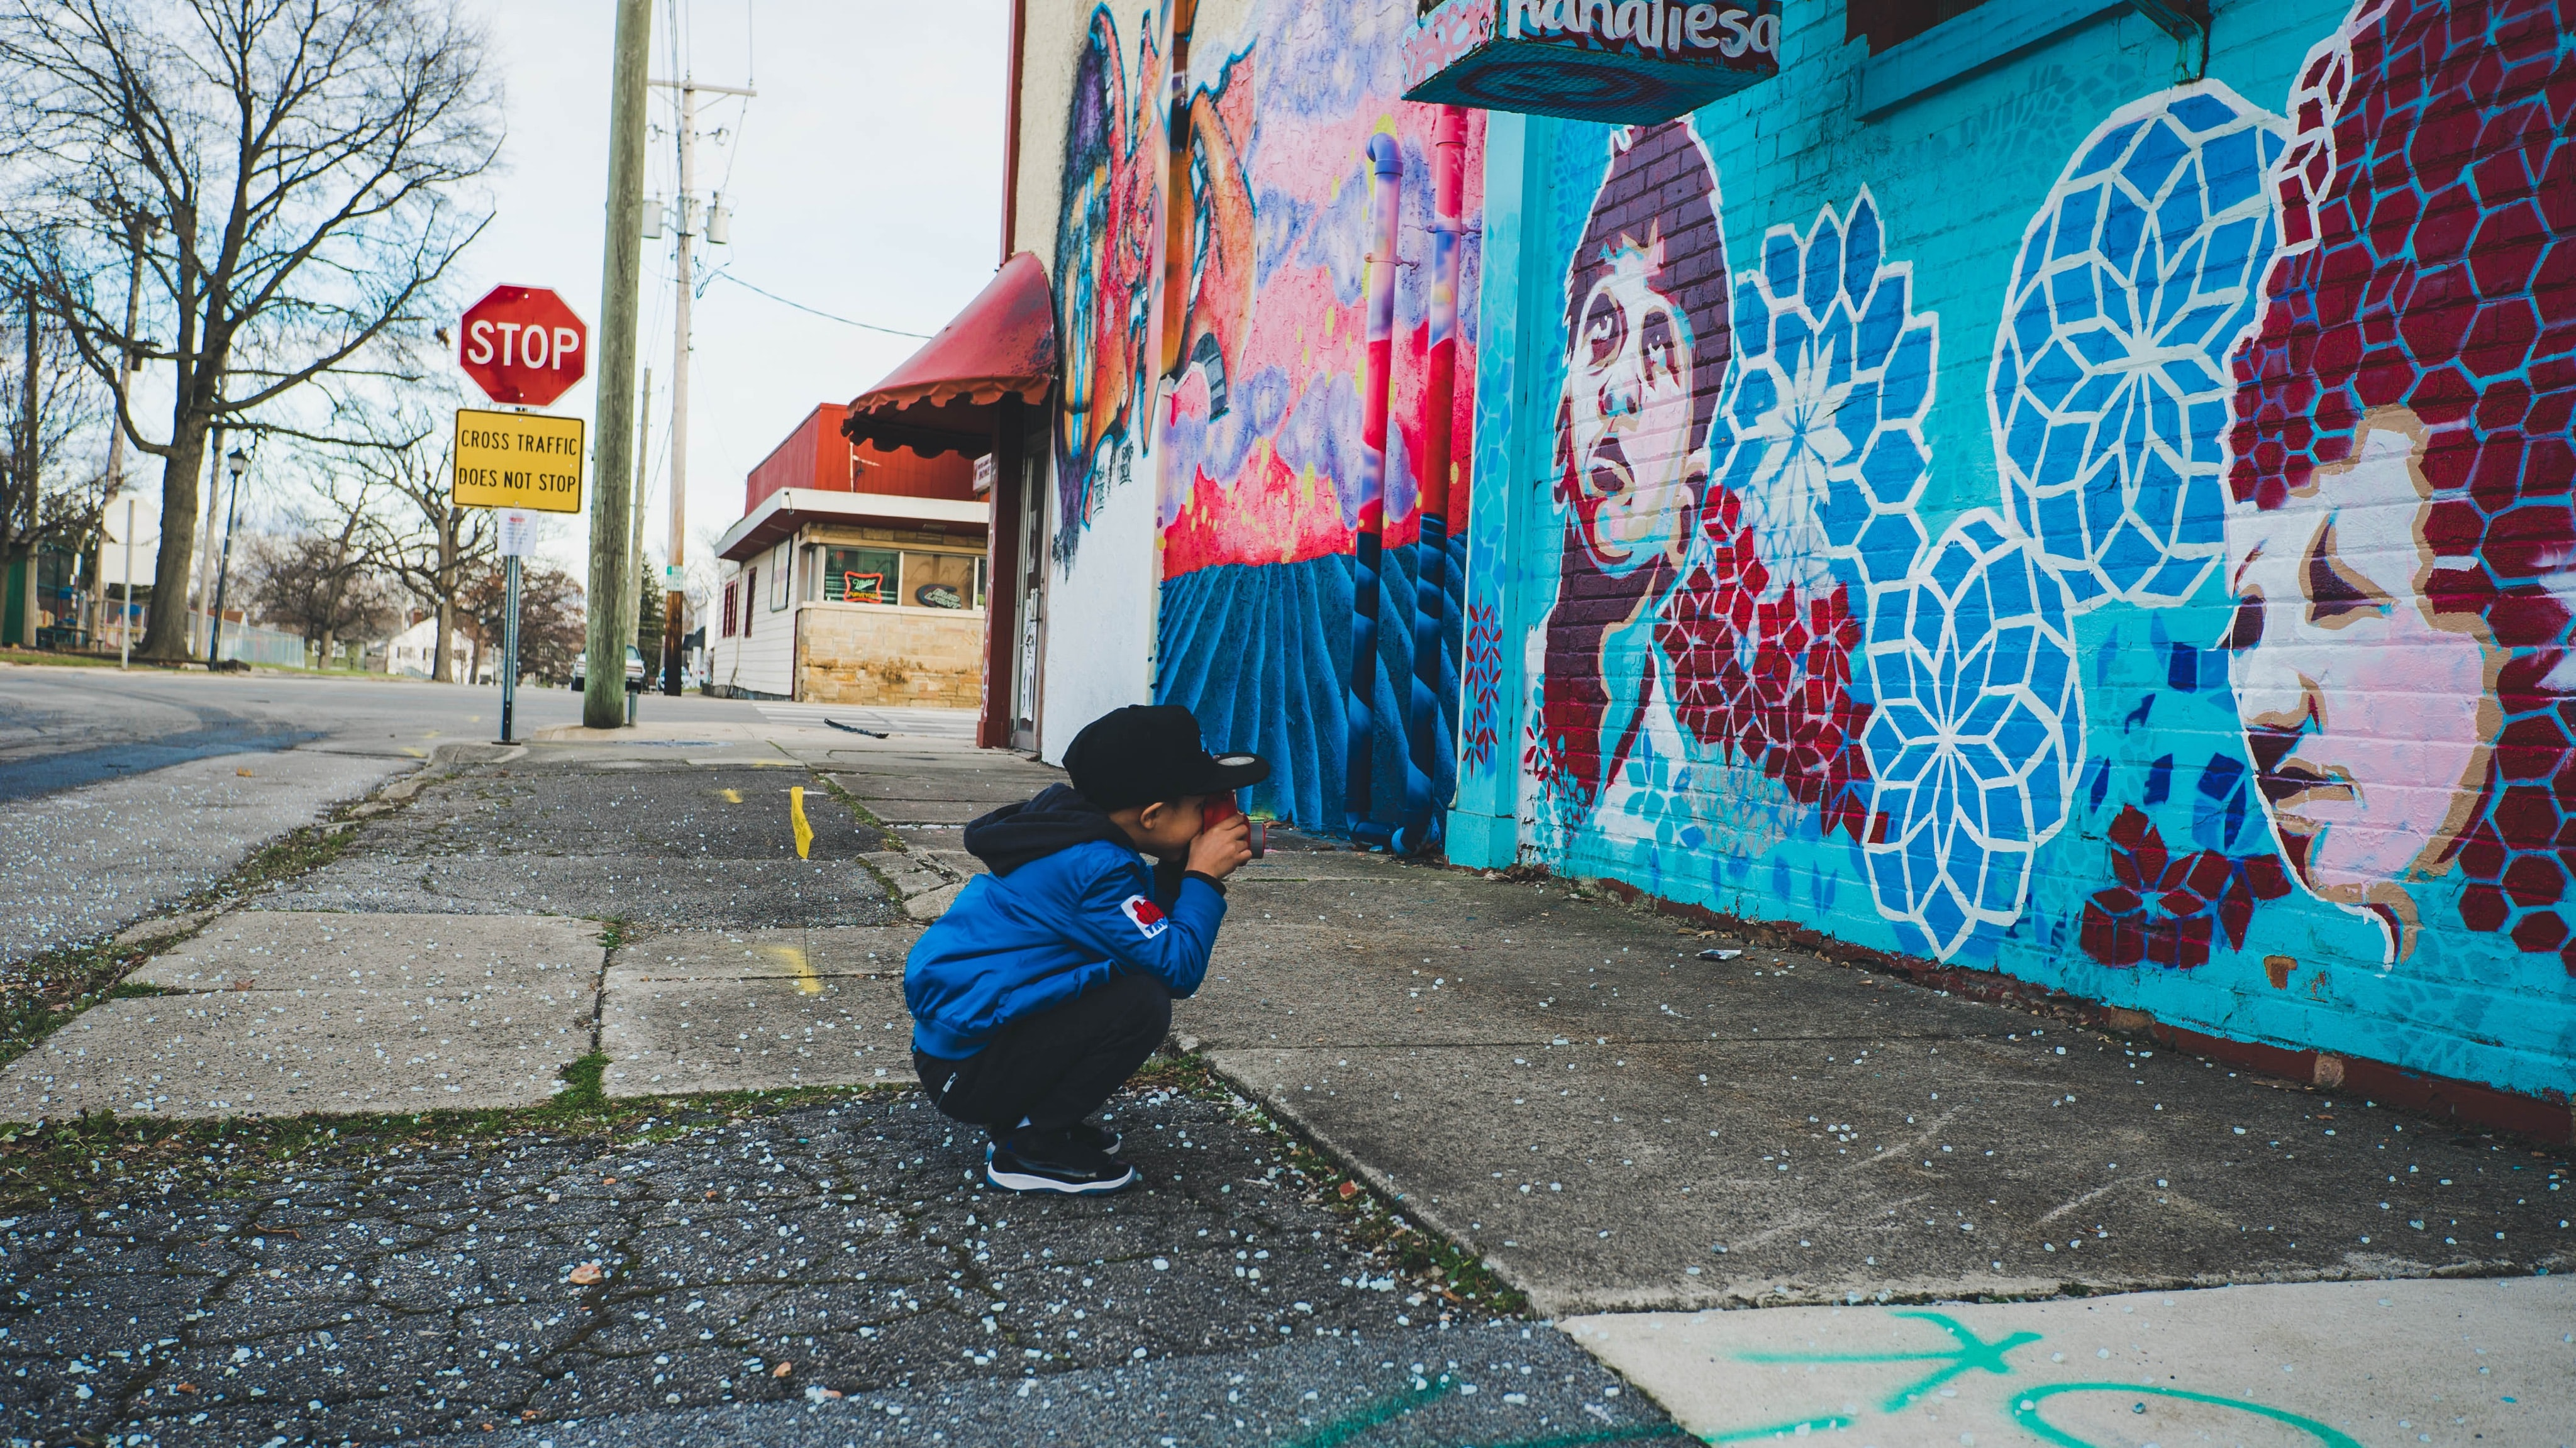 Boy taking picture of colorful street art near stop sign in New York, Texas, United States